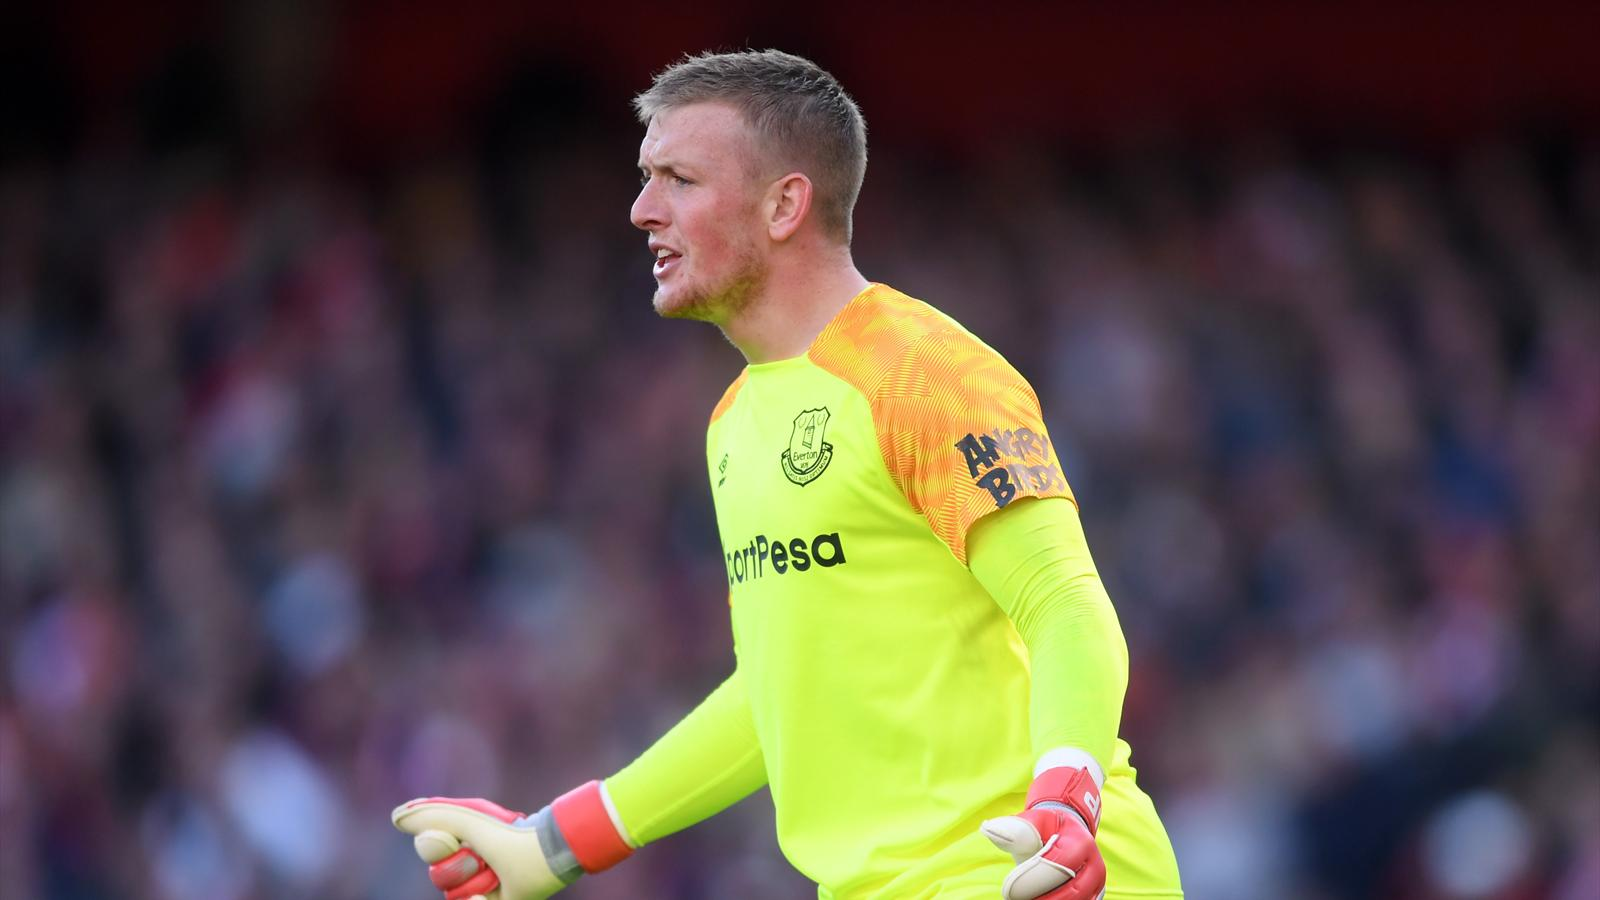 Football News - Paper round: Manchester United plans to replace David de Gea with Jordan Pickford - Premier League 2018-2019 - Football